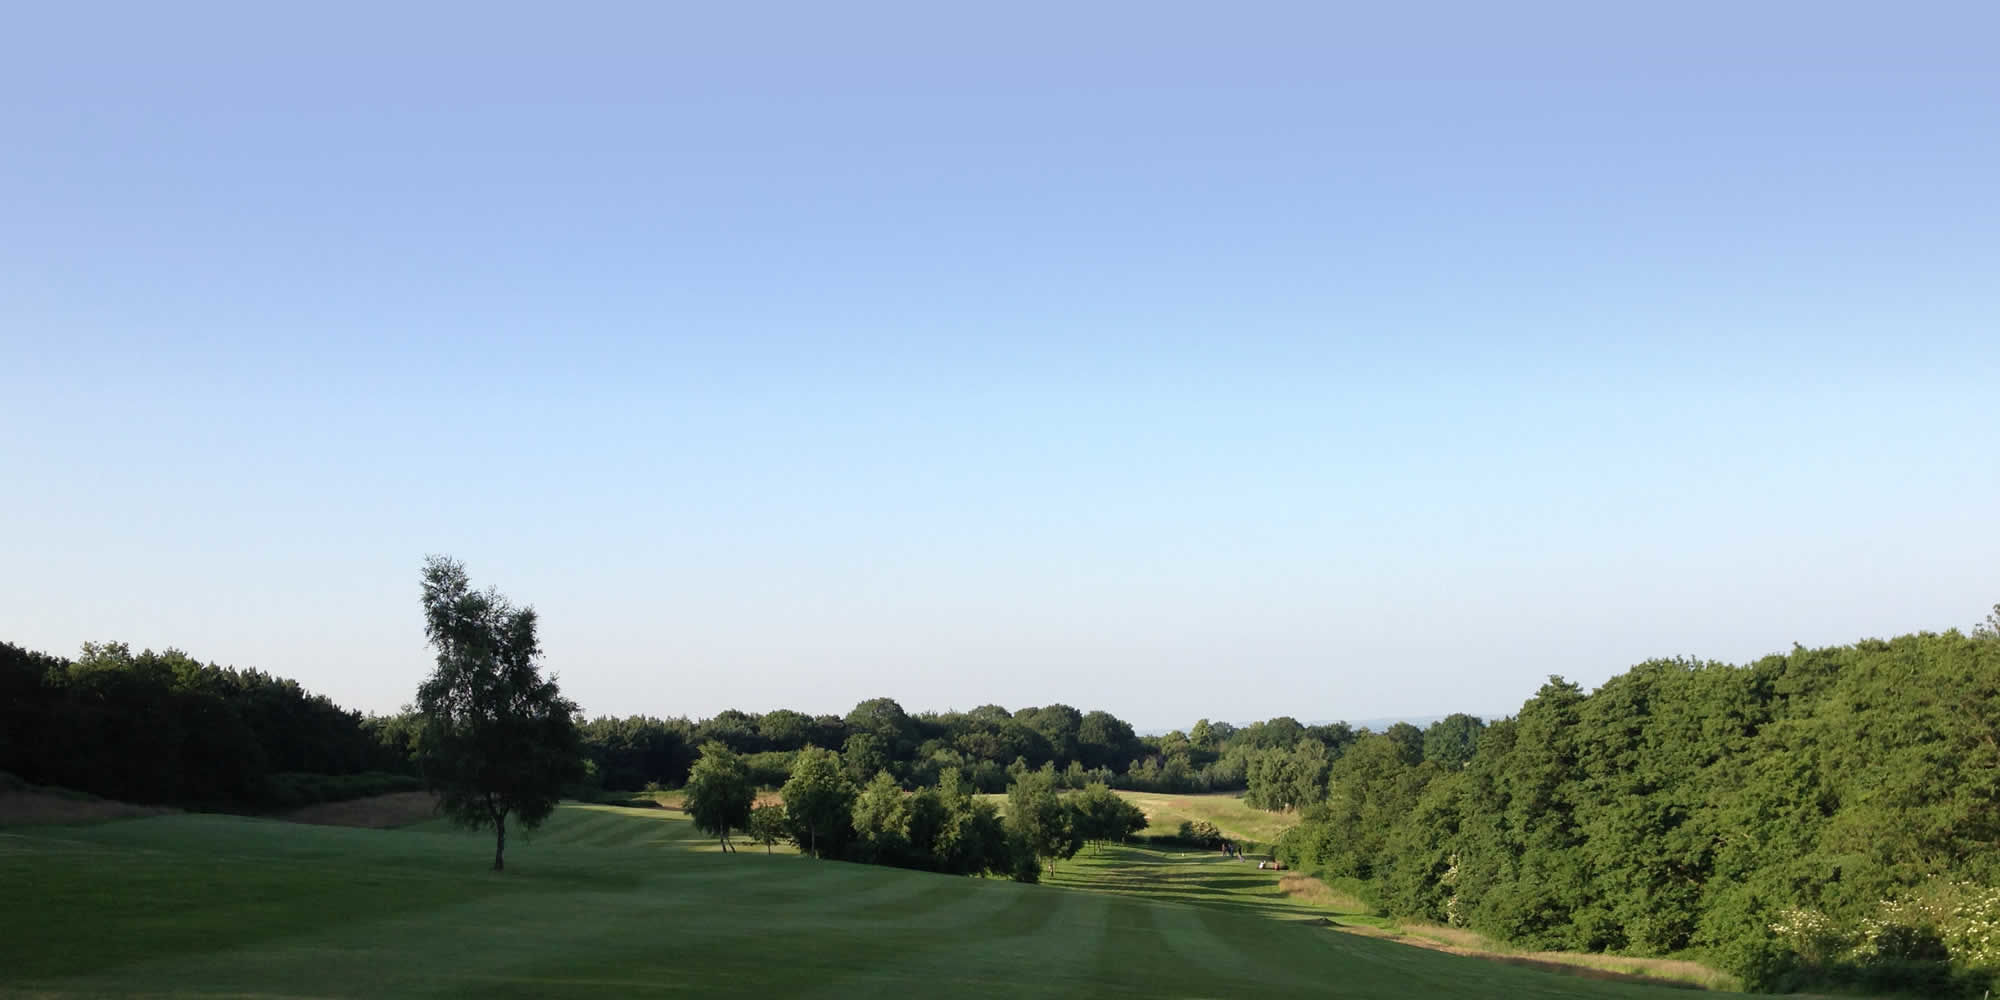 Atherstone golf club cover picture